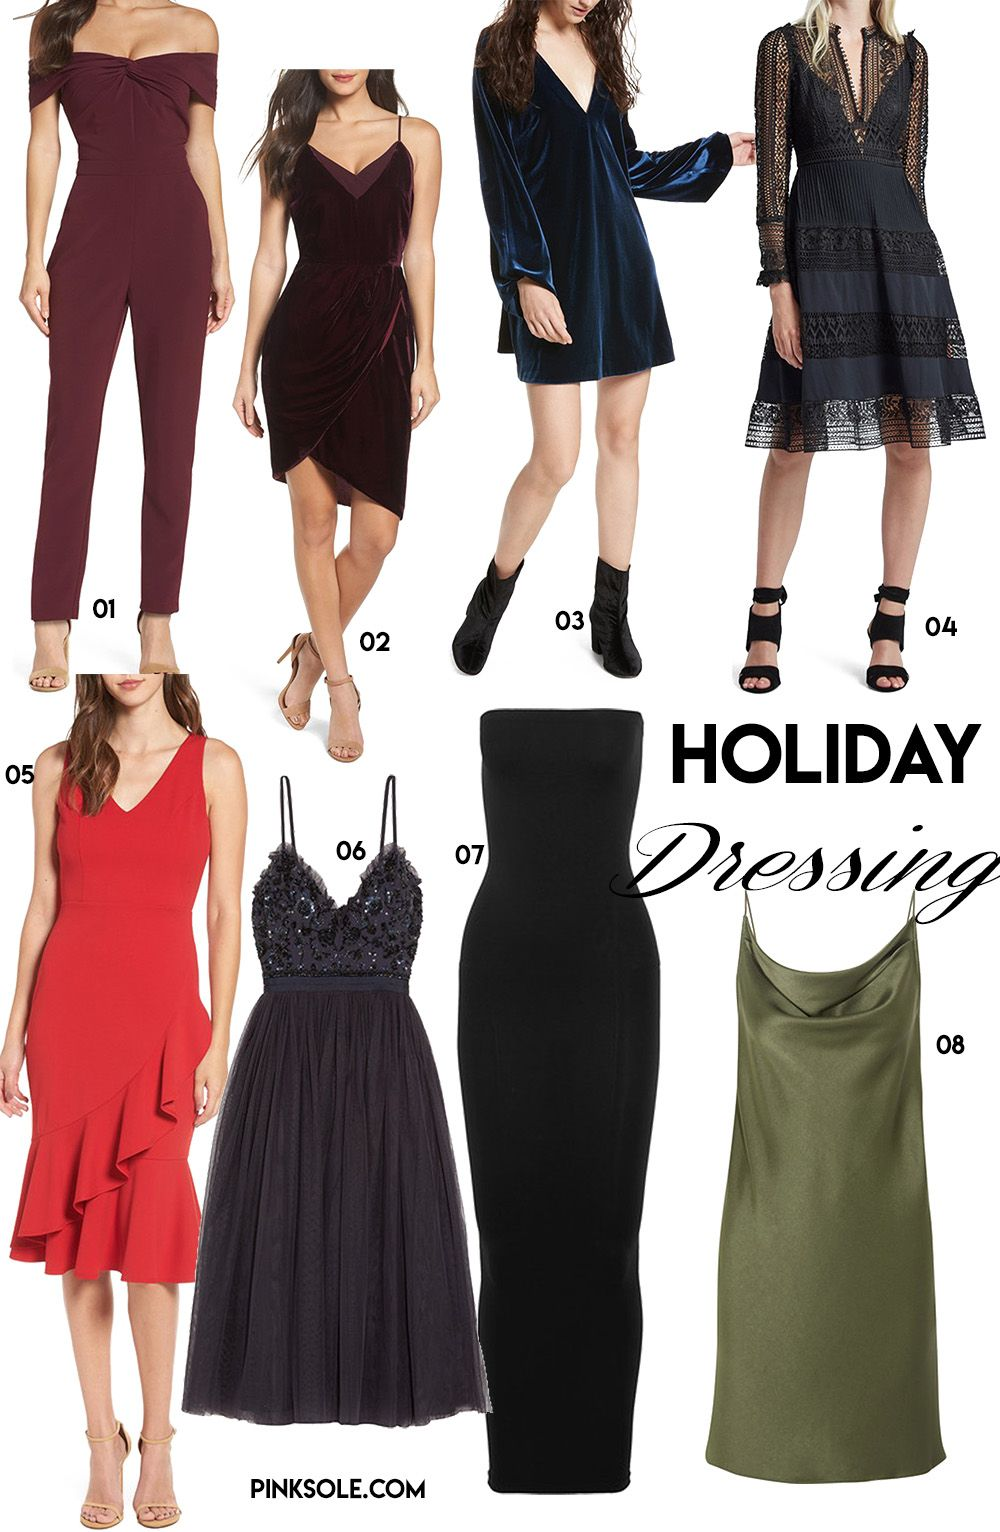 34d23c364e7 holiday dresses for parties NYE cocktail party  NYE  partydresses   styleblogger